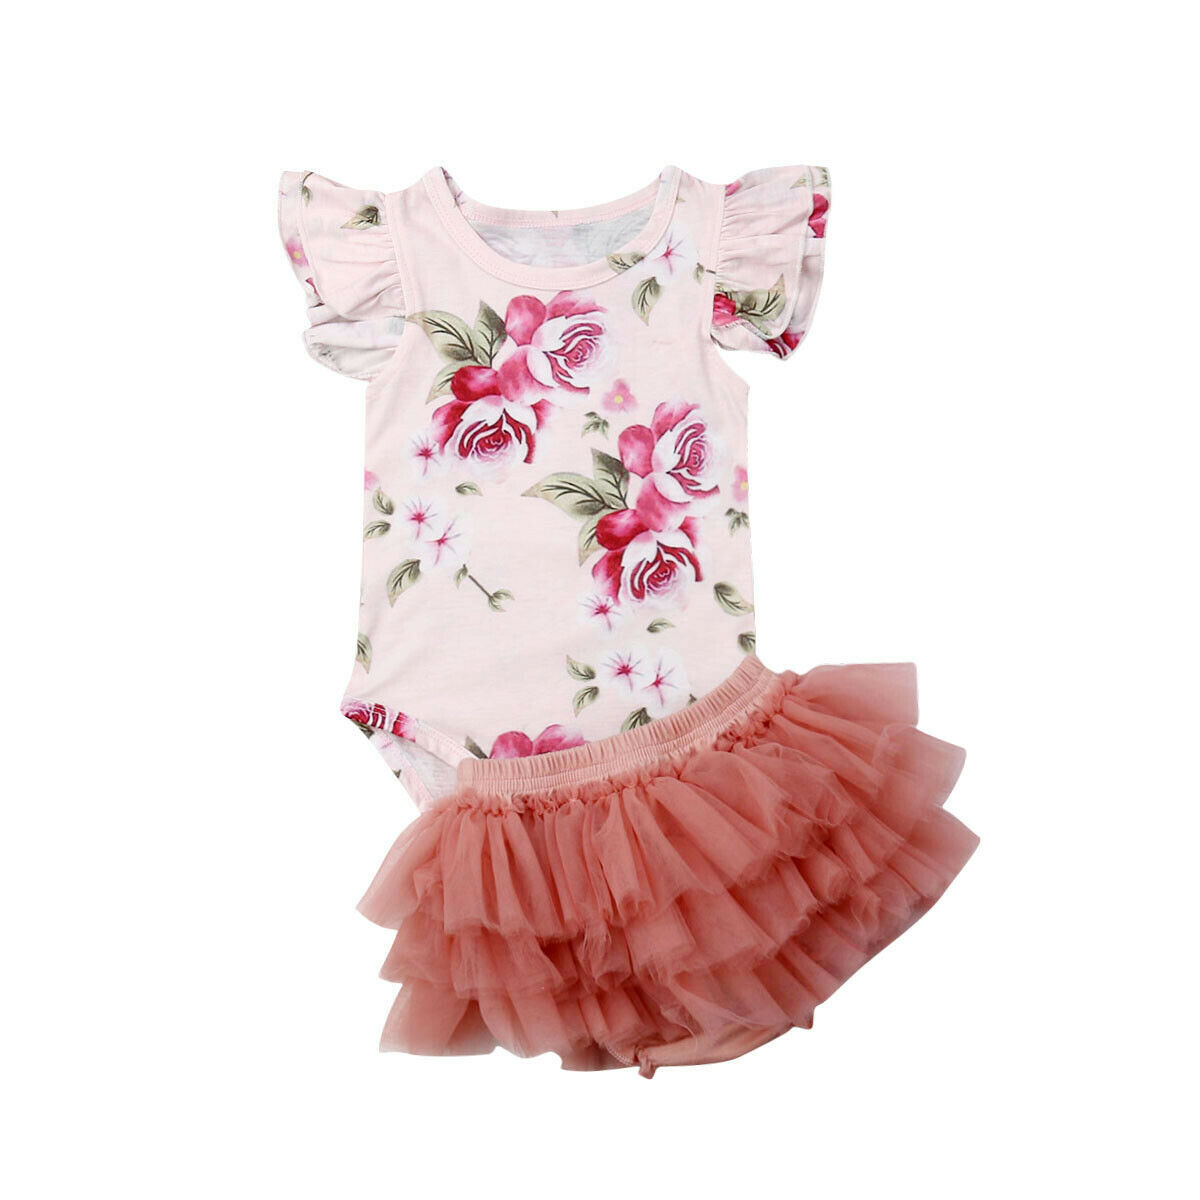 Newborn Baby Girl Floral Romper Tulle Skirts Outfits Cupcake Dress Summer Set To